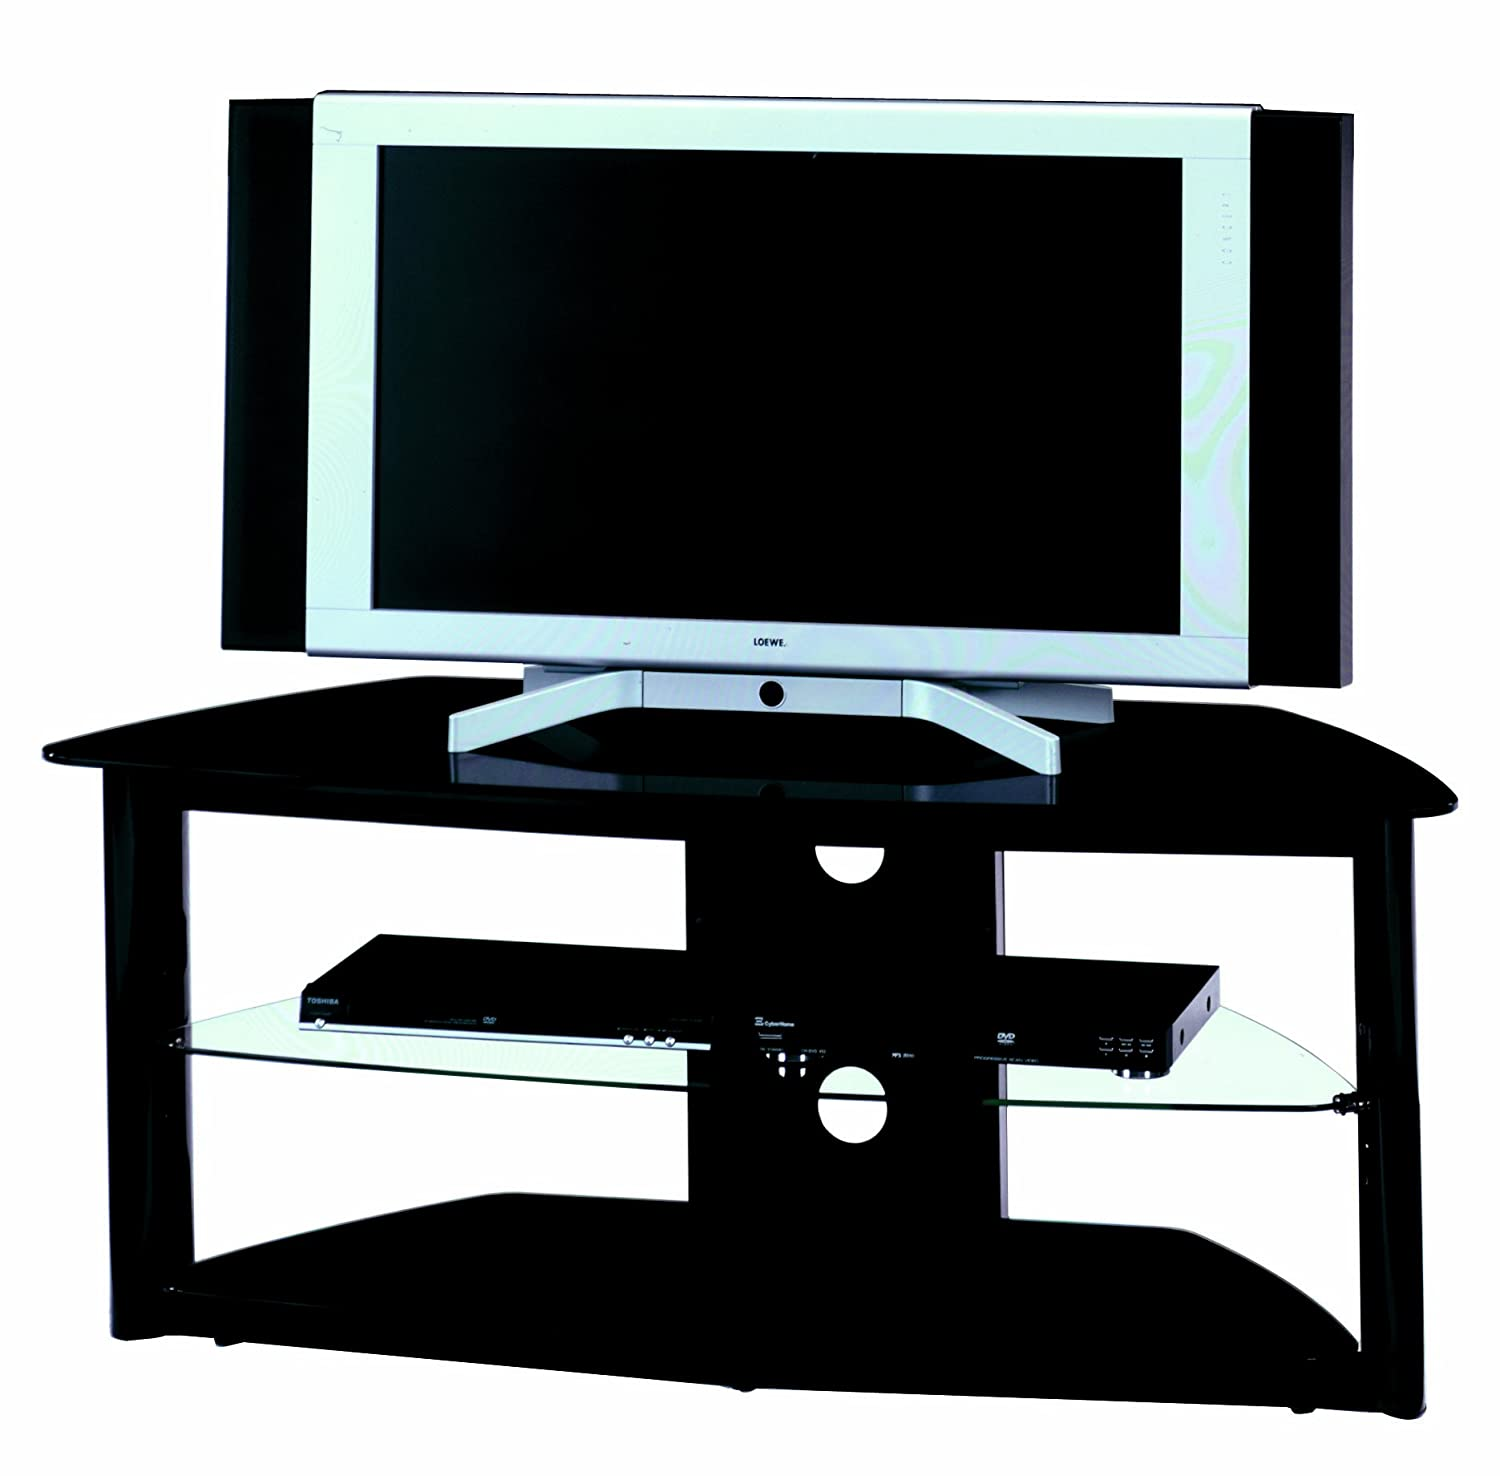 jahnke tv rack Jahnke Cuuba MR 89 39 M05 TV Rack Black-Black High Gloss 120 x 50 x 45 cm:  Amazon.co.uk: Kitchen u0026 Home